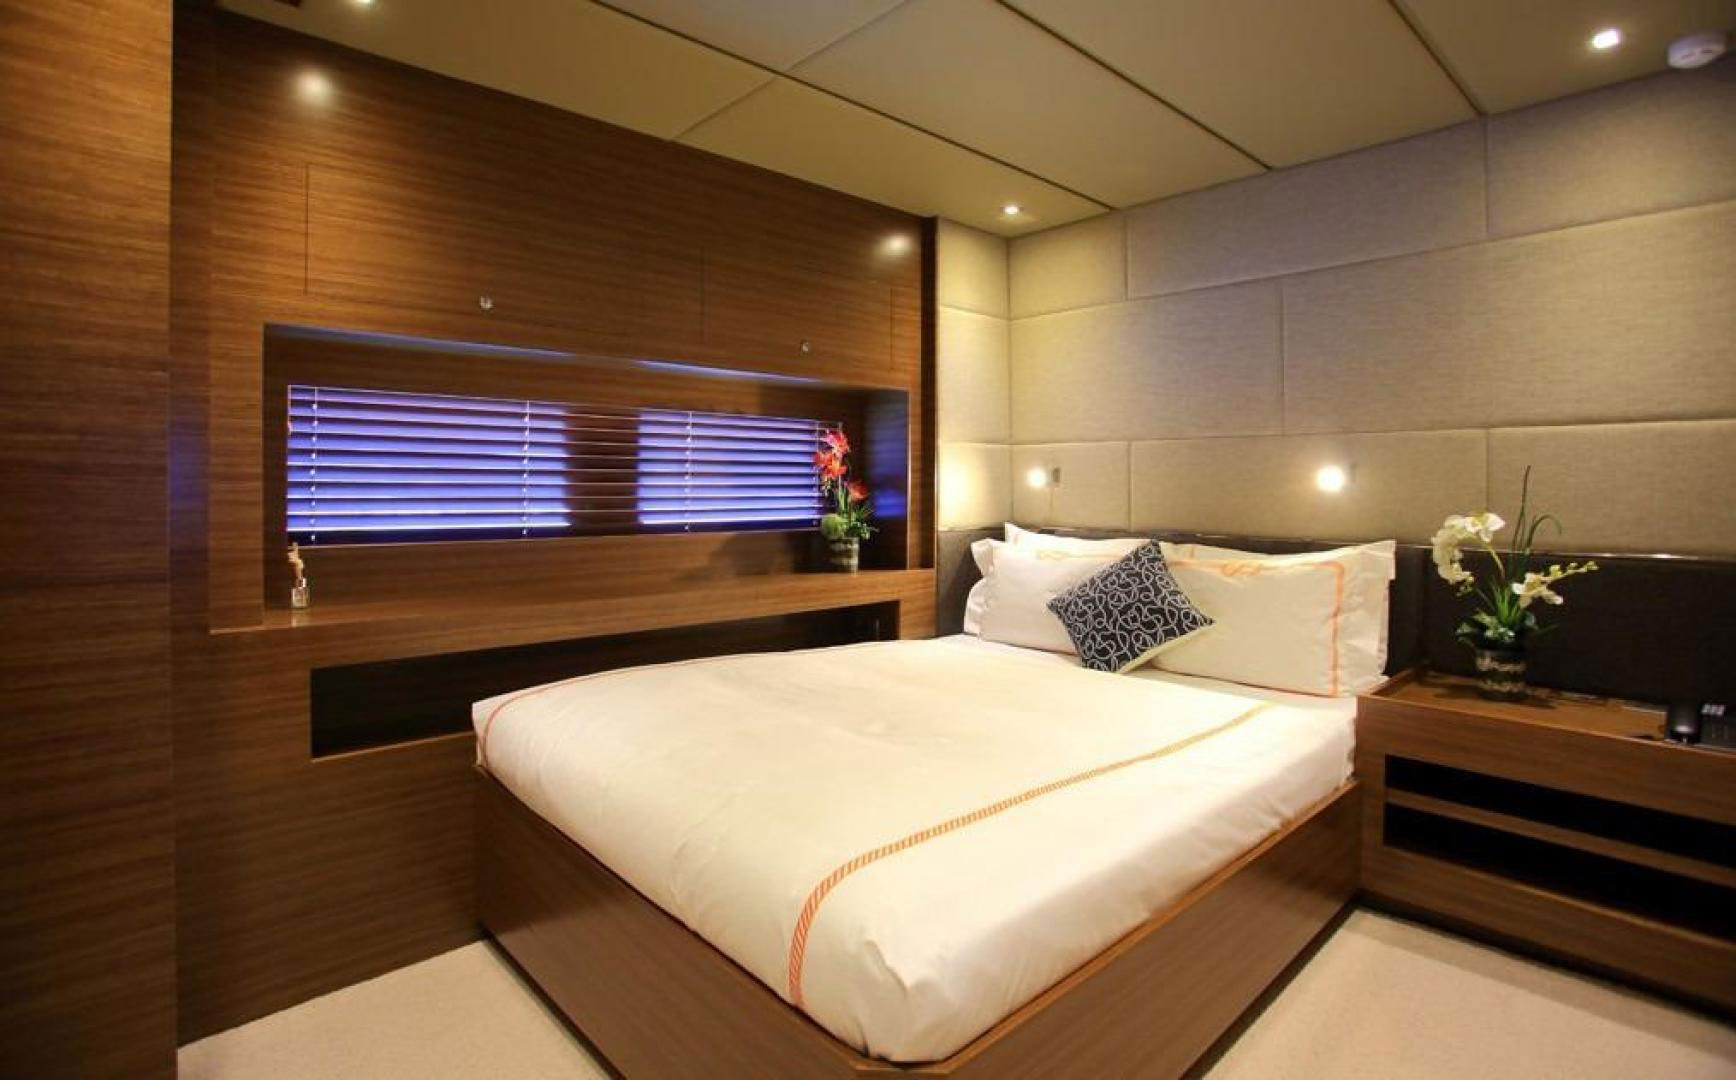 150-ft.-Luxury-Power-Yacht-–-Up-to-200-People - stateroom